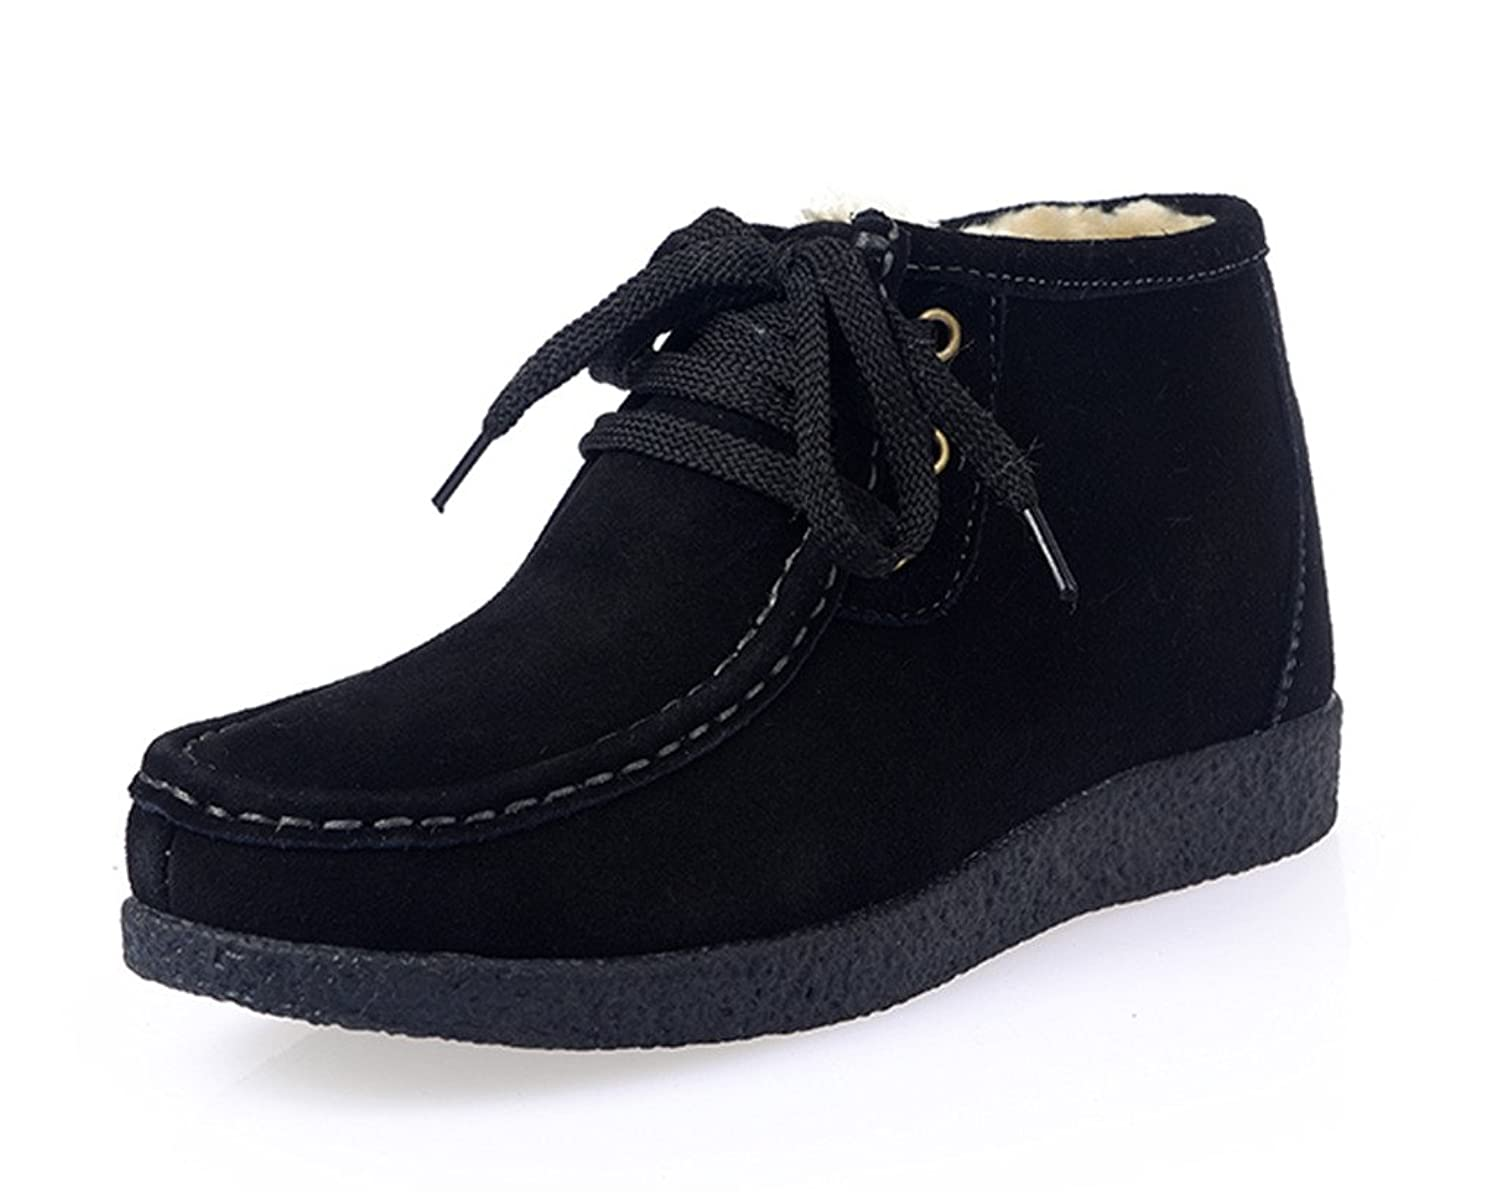 SUNROLAN Beacon Women's Suede Lace-Up Chukka Moccasin Boot Faux Fur Lined Winter Snow Booties